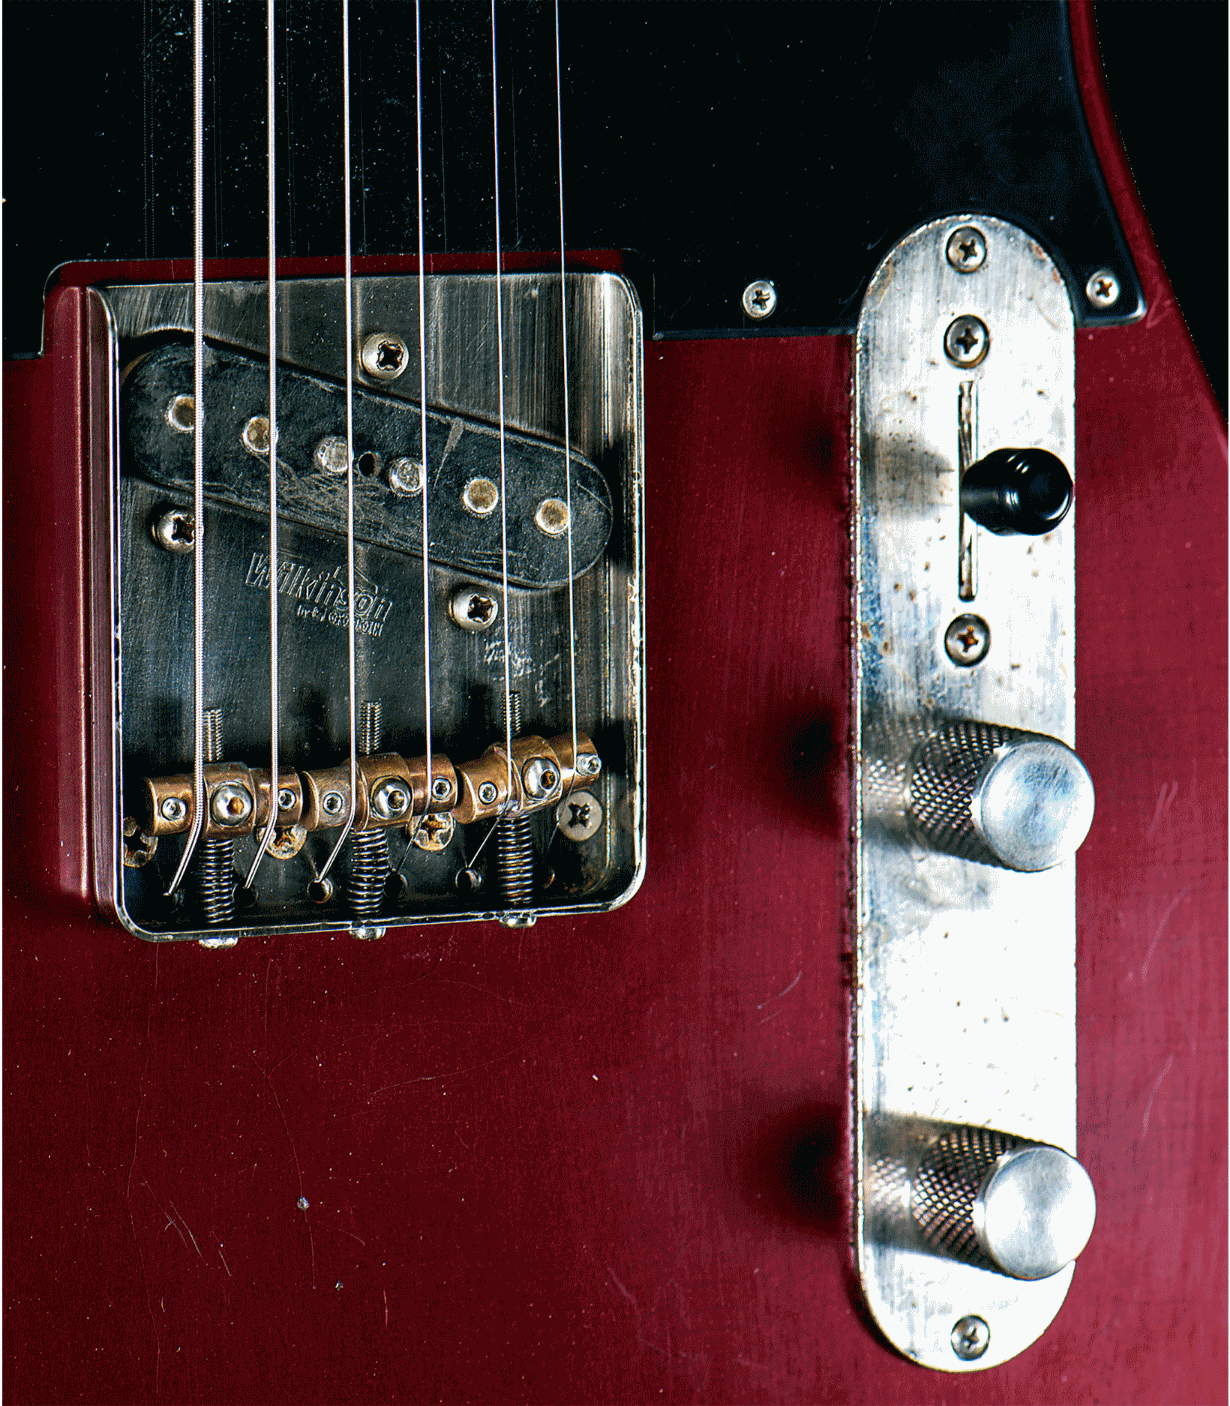 Maybach_Teleman_T54_Winered_Aging_Electric-Guitars